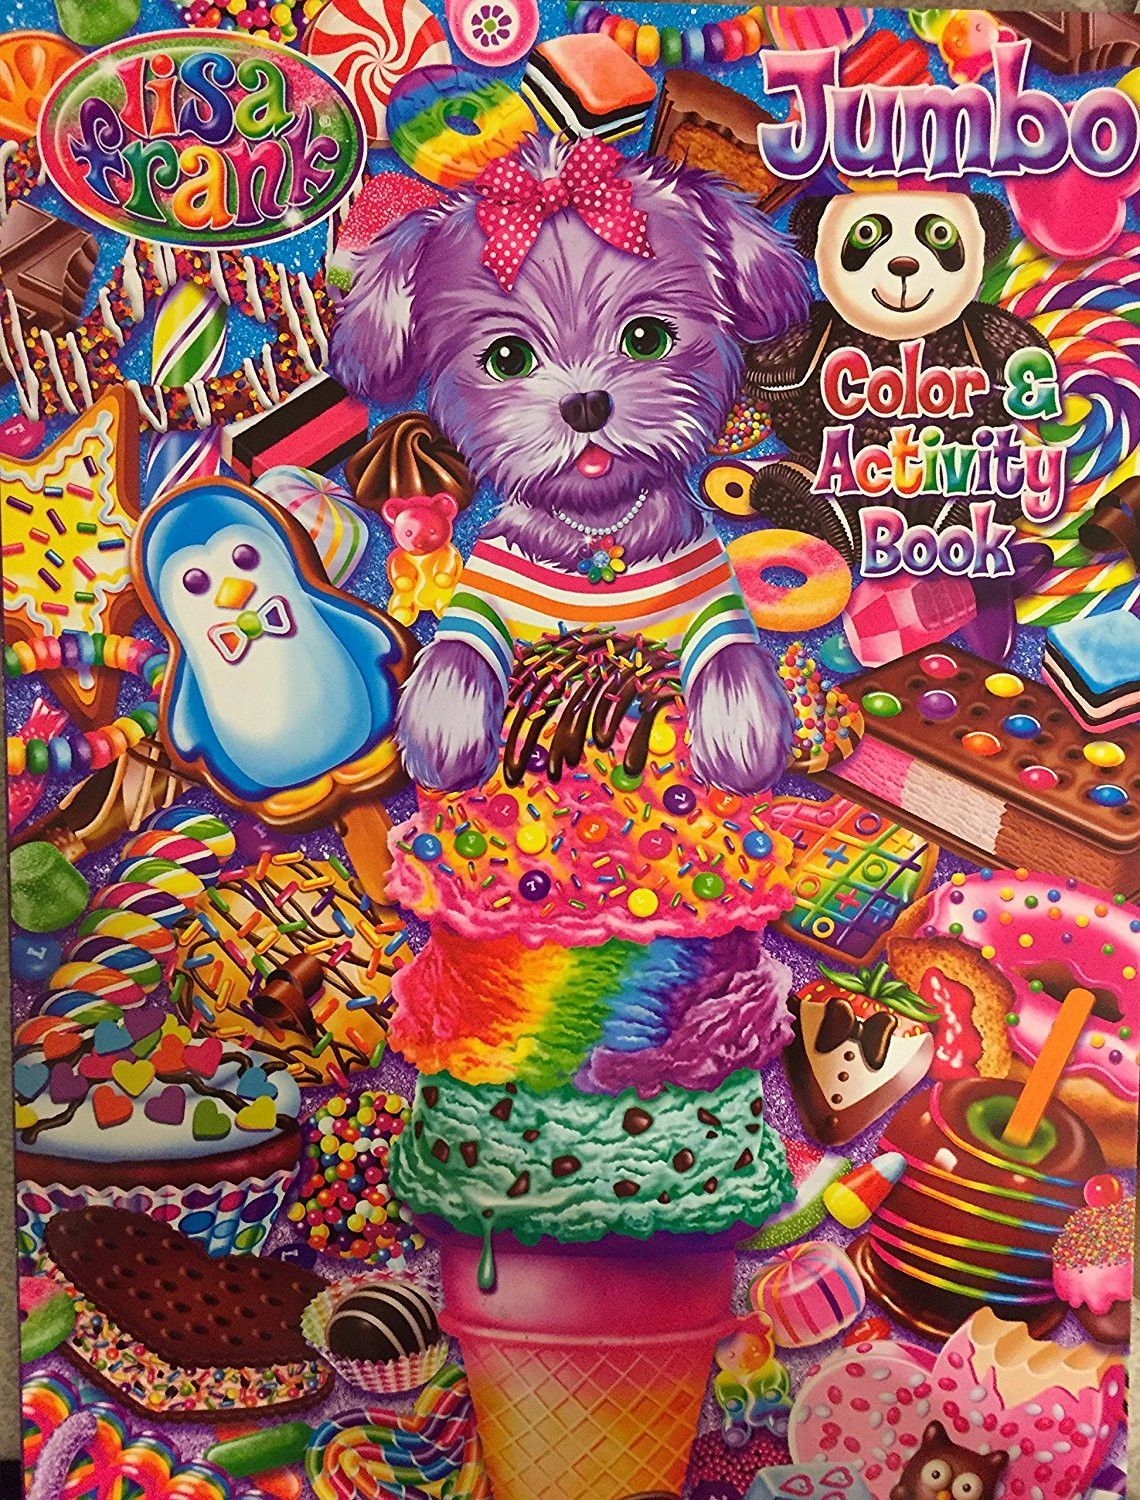 With Over 125 Stickers Lisa Frank Coloring /& Activity Book